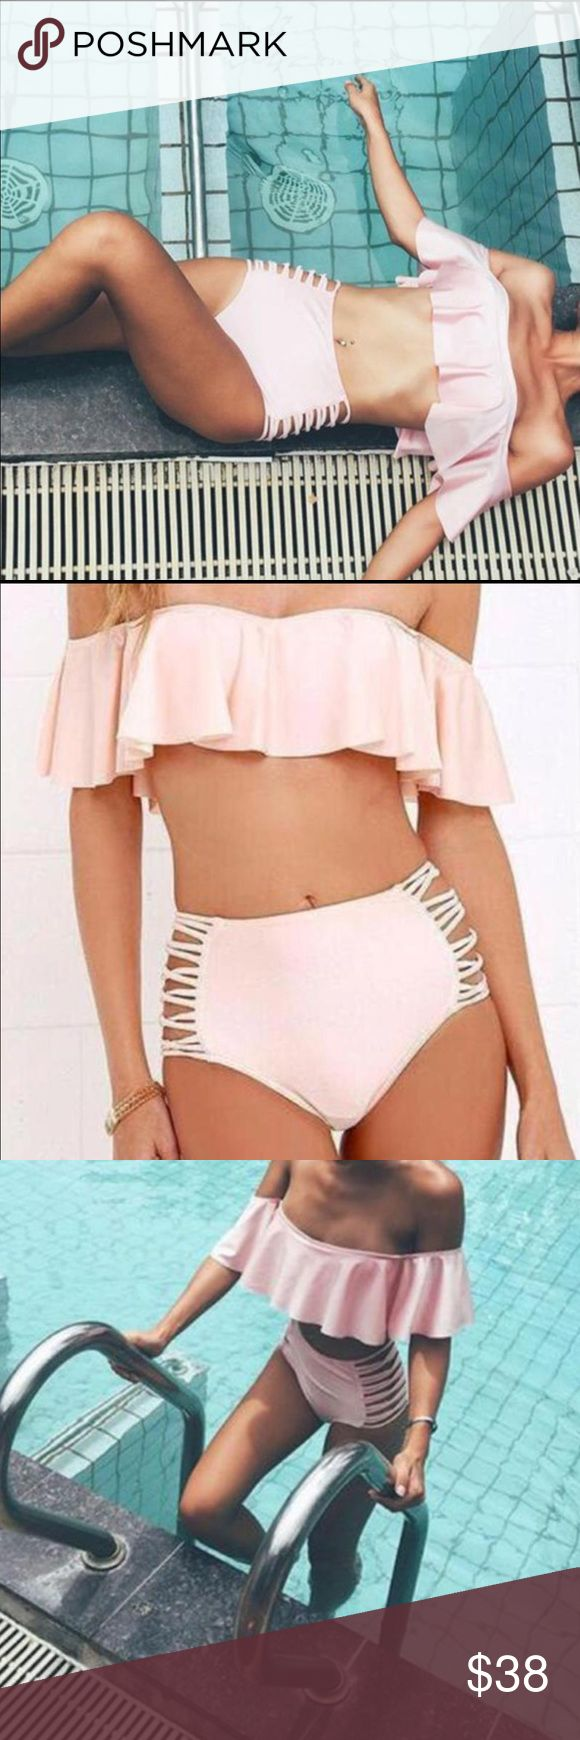 Sydney swimsuit I call her Sydney super cute and chic pastel pink bikini. Two piece high wasted with side cutouts. Ruffle off the shoulder top. New without tags(straight from manufacturer) none Swim Bikinis